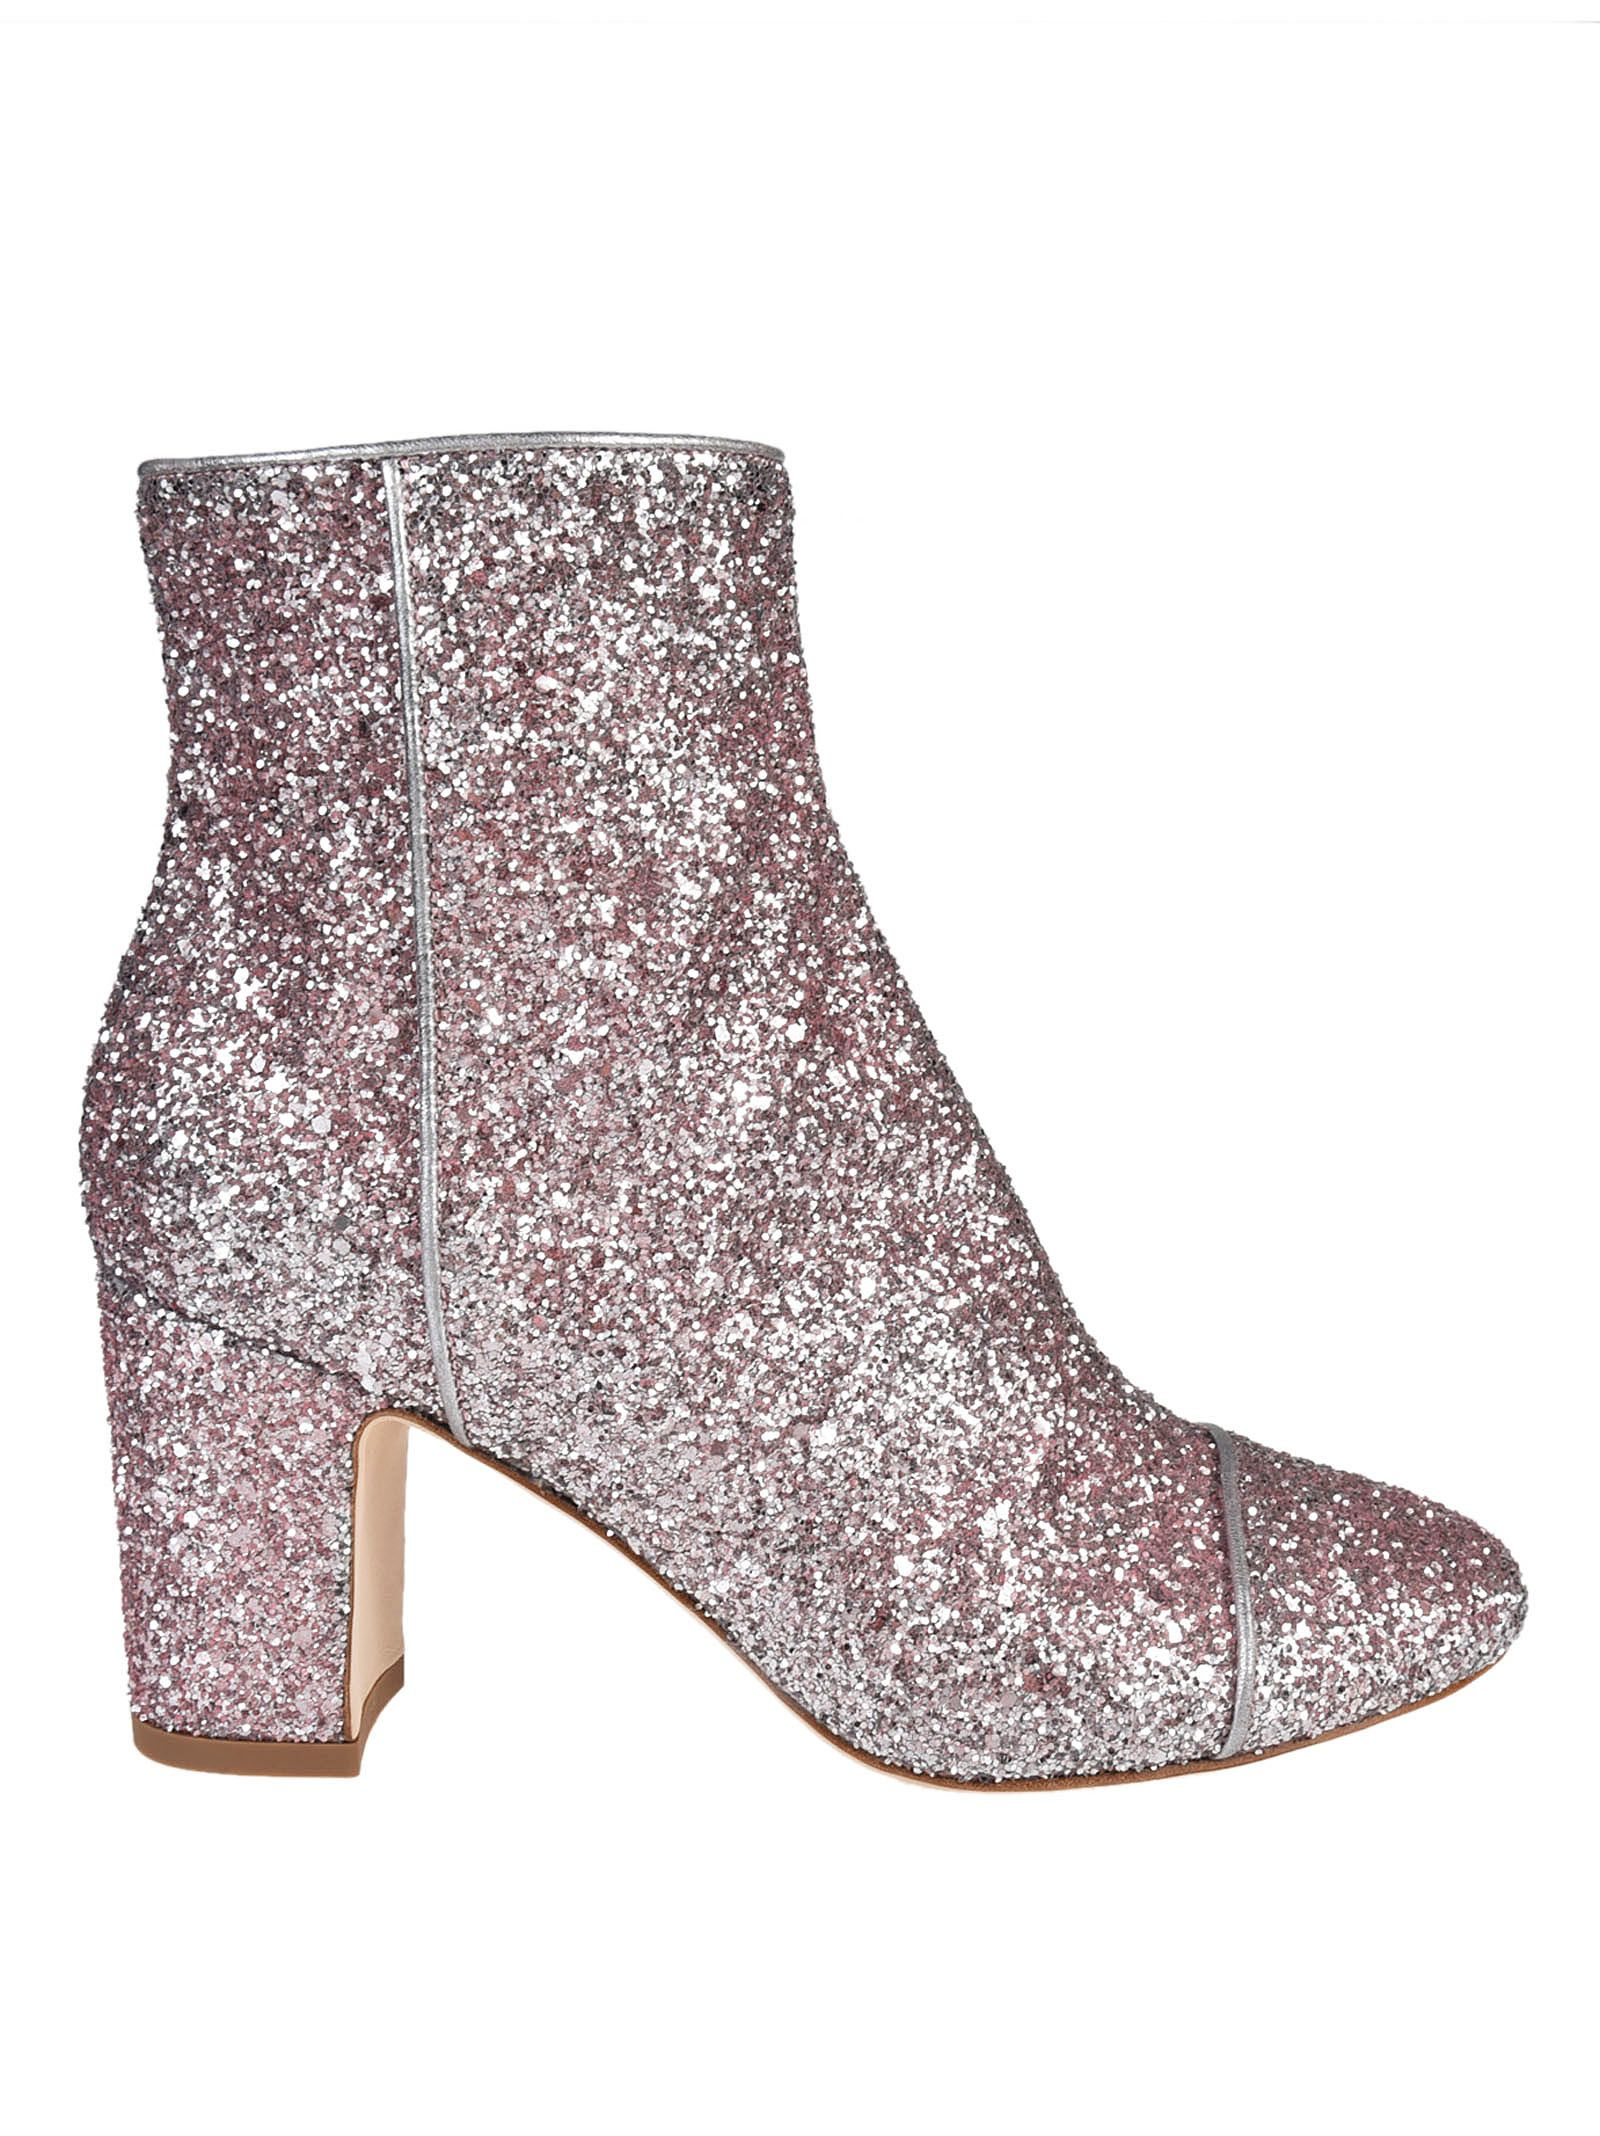 Polly Plume Ally Sparkling Ankle Boots